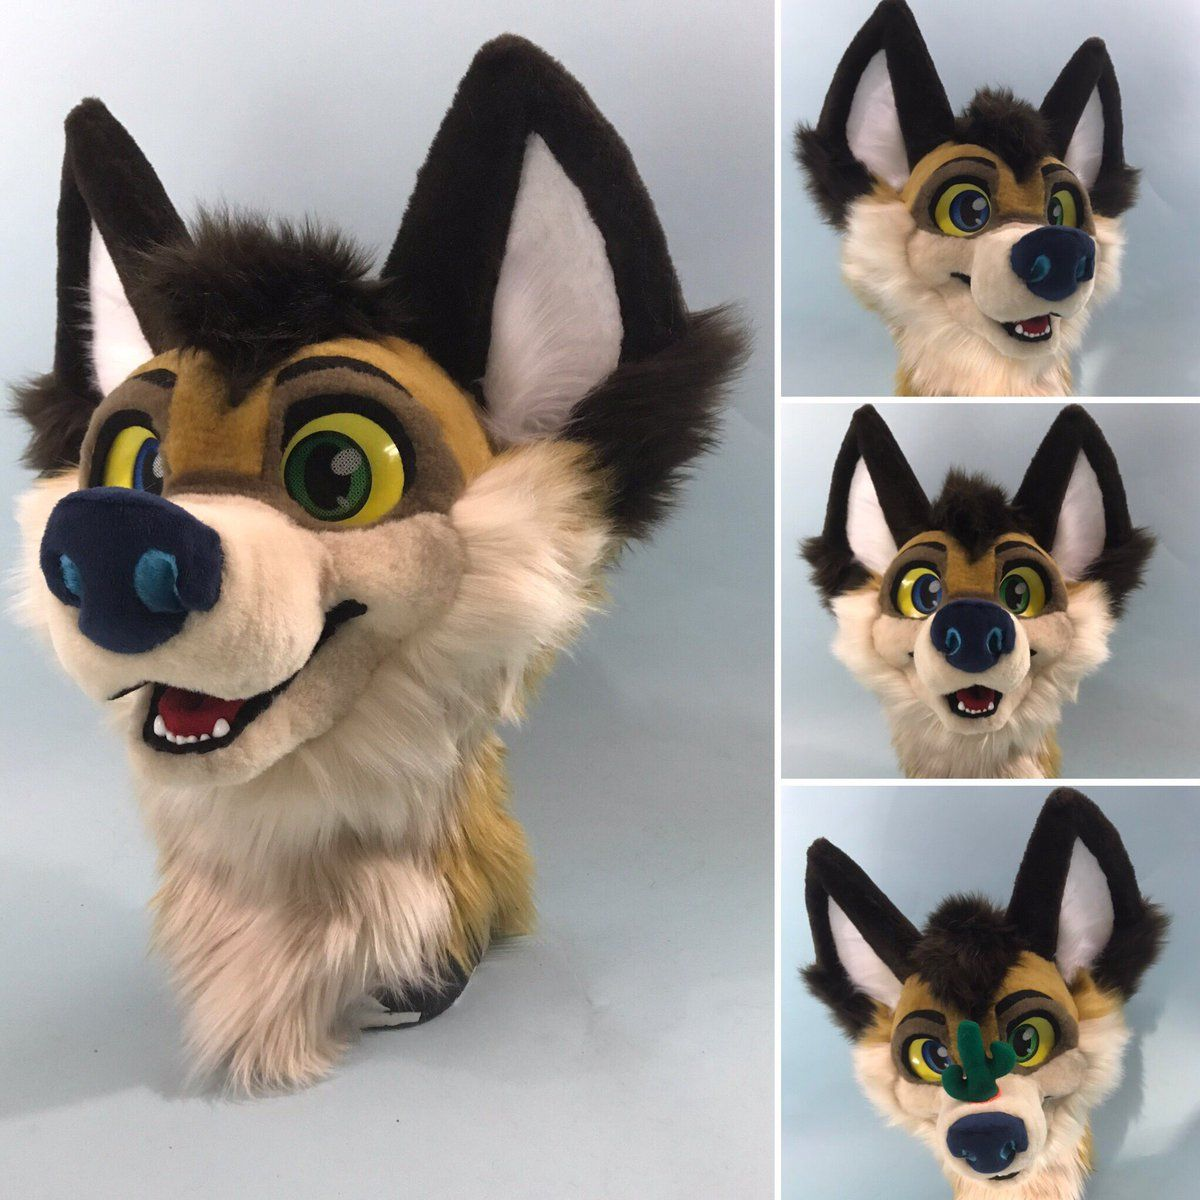 Canine fursuit tail wolf coyote fox dog long fluffy tail. costume tail